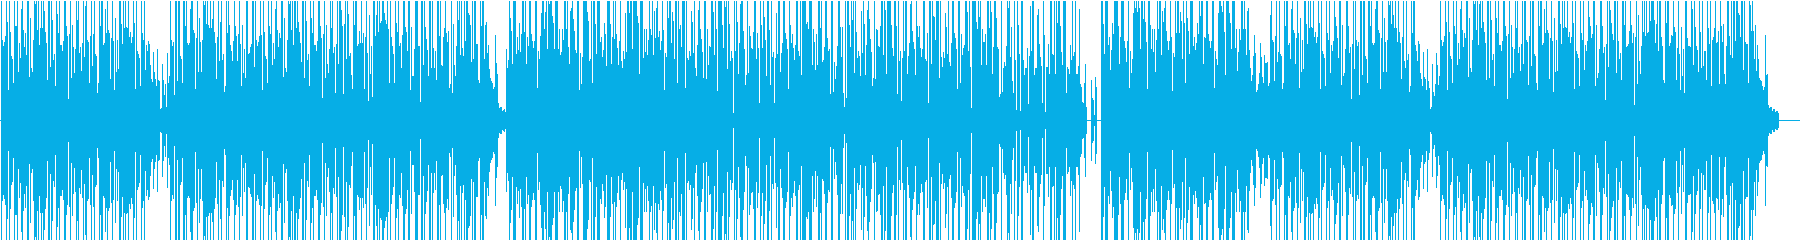 Bright and light BGM's reproduced waveform